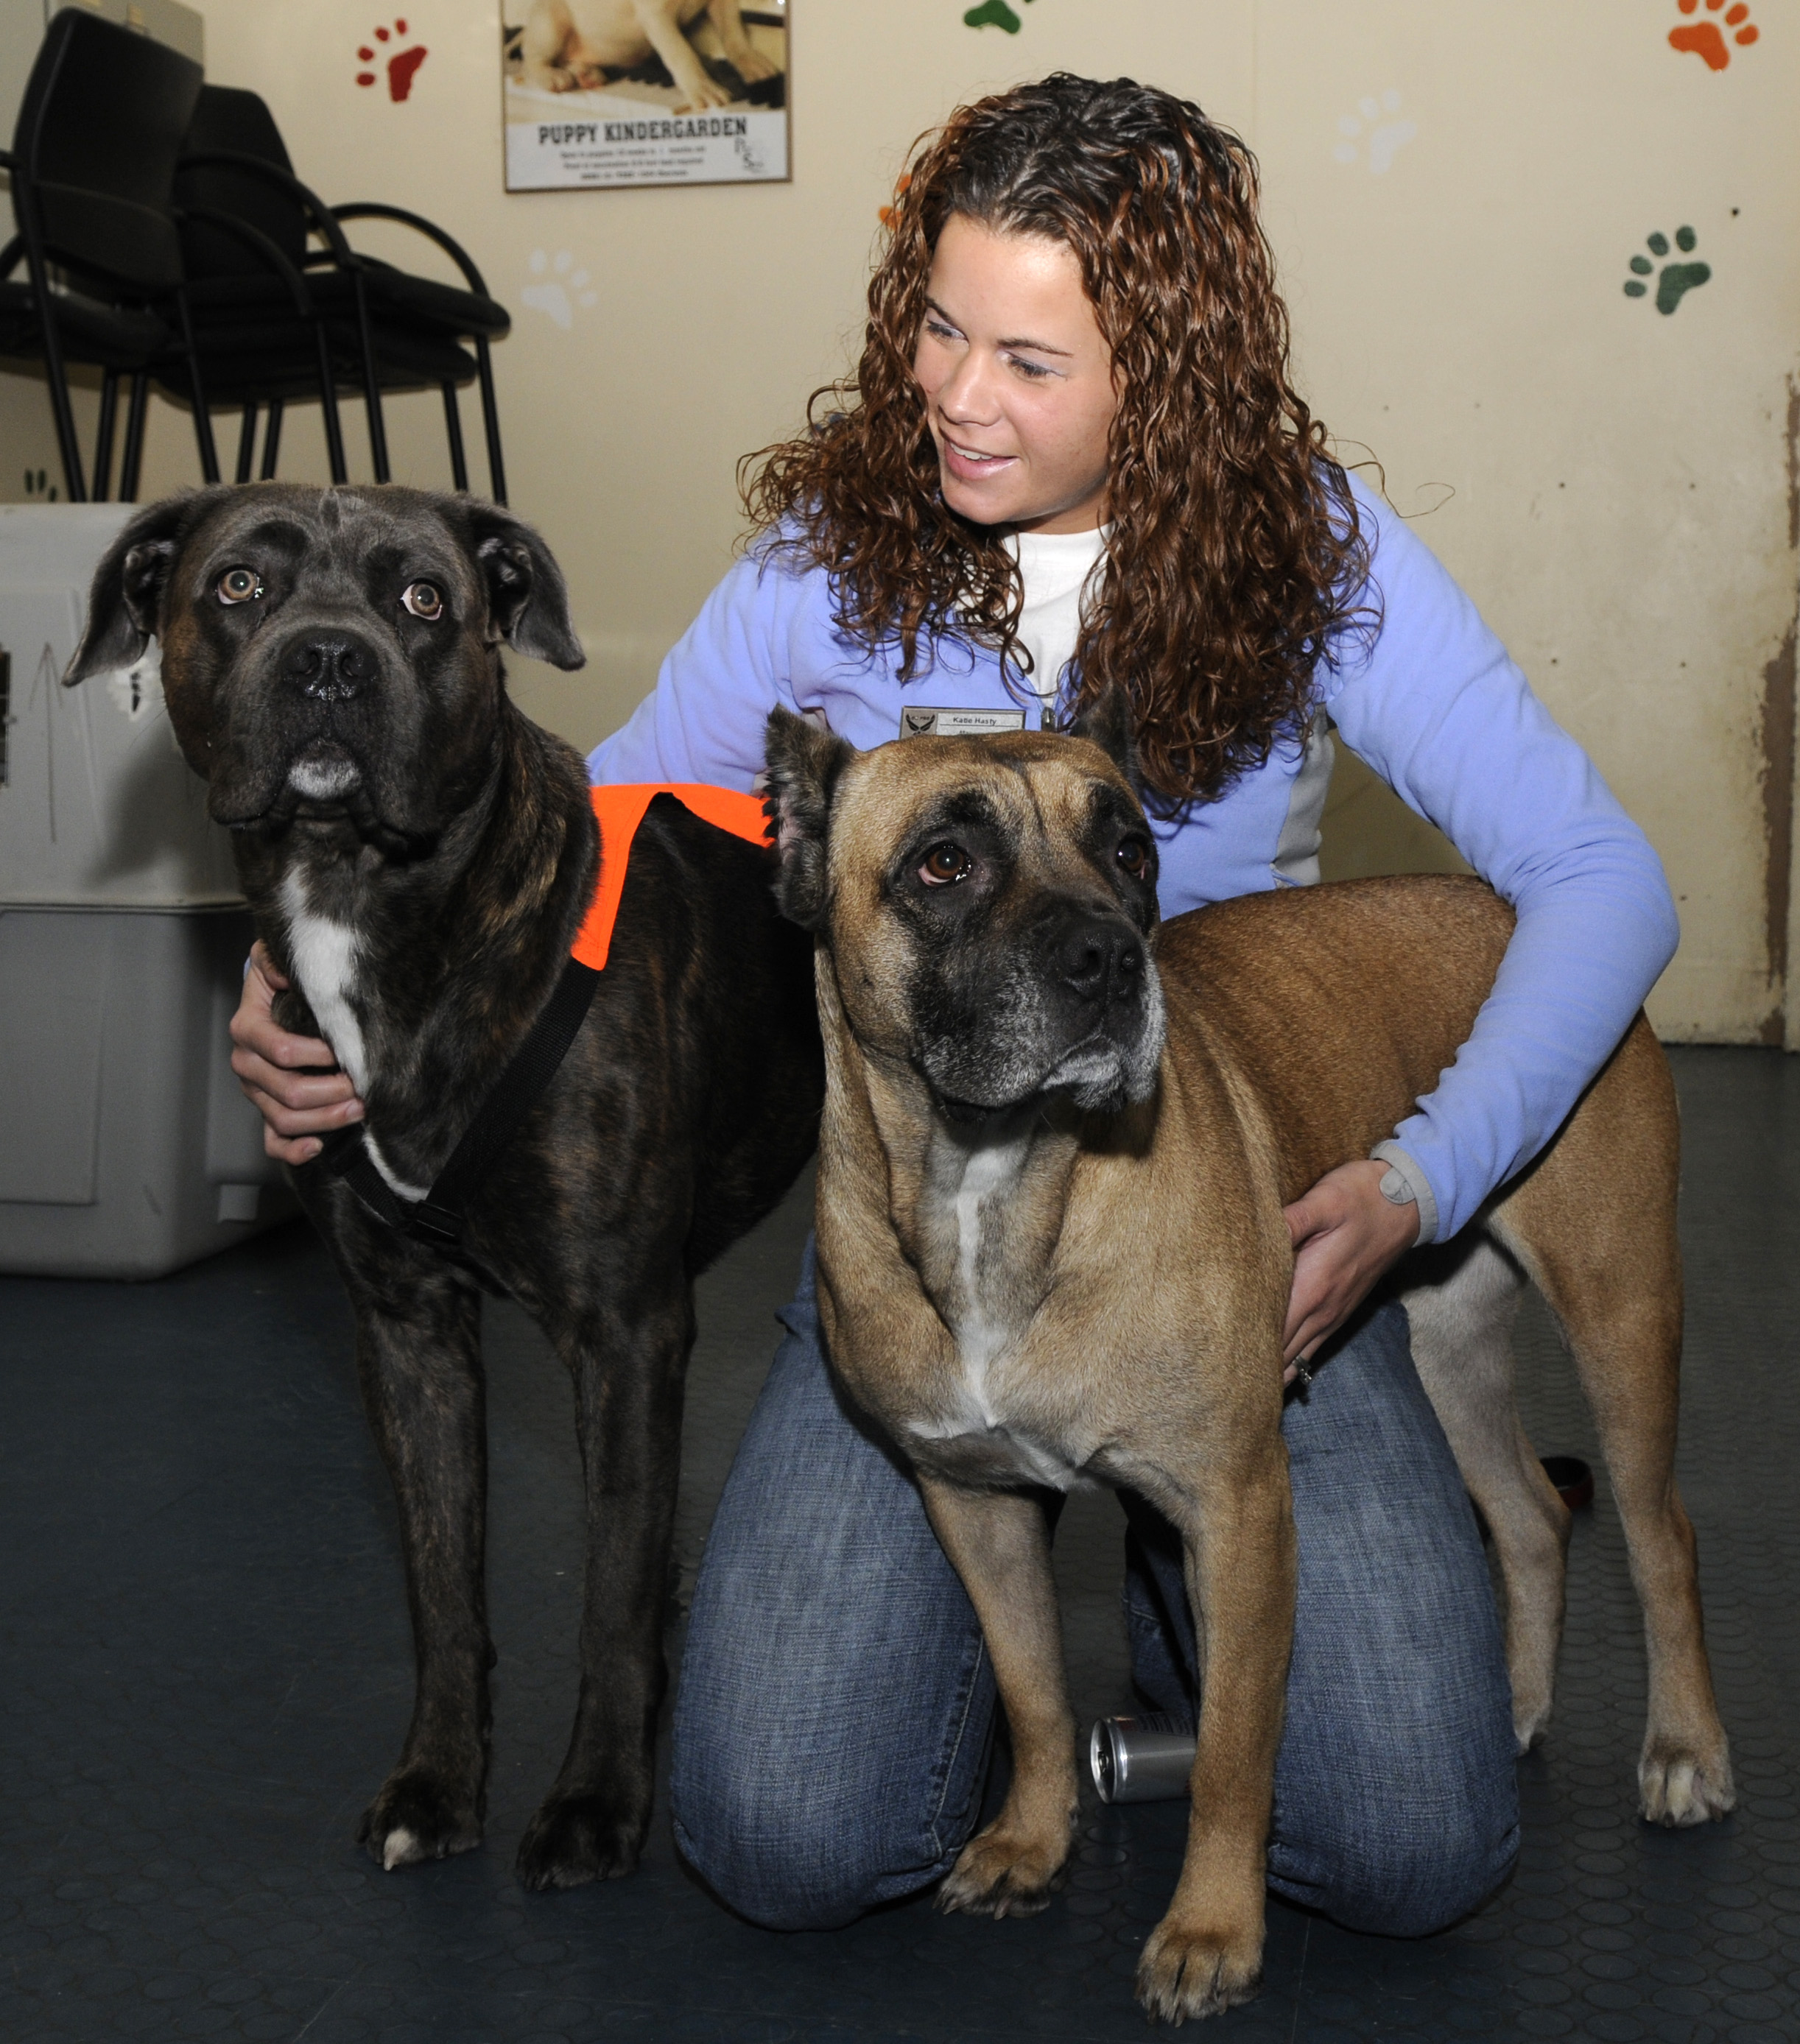 large dogs with lady